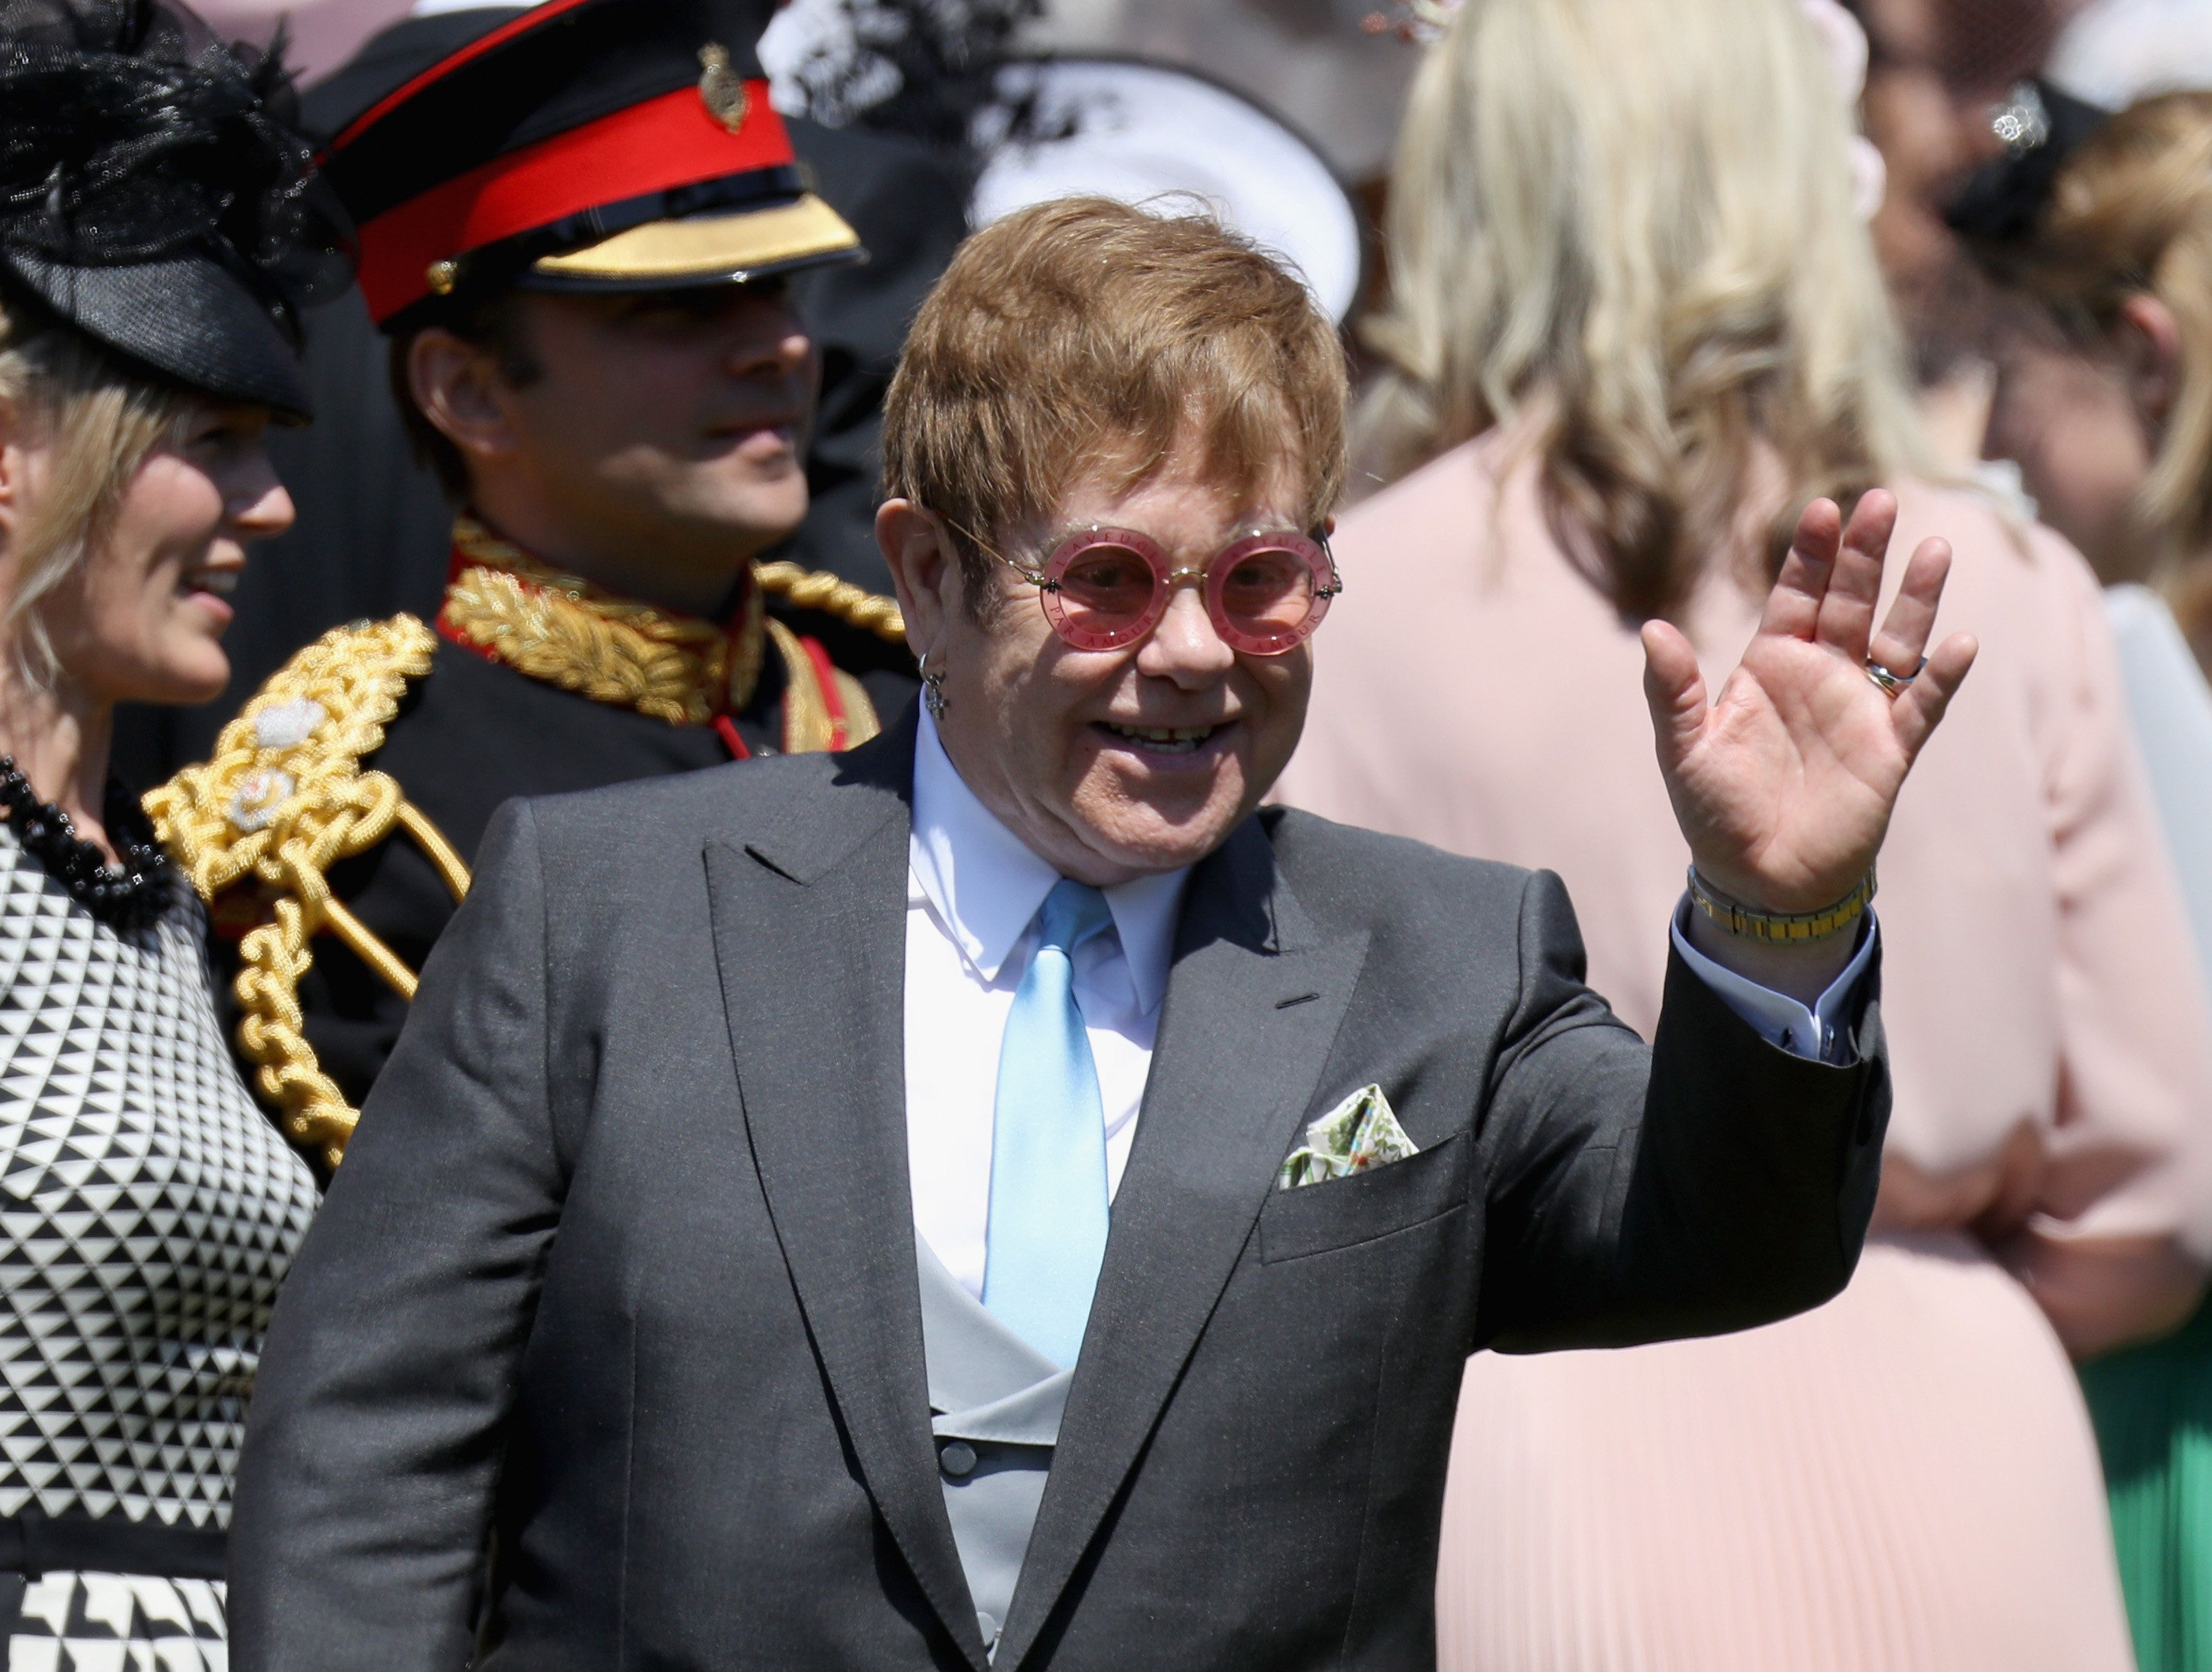 WINDSOR, ENGLAND - MAY 19:  Sir Elton John arrives at the wedding of Prince Harry to Ms Meghan Markle at St George's Chapel, Windsor Castle on May 19, 2018 in Windsor, England. Prince Henry Charles Albert David of Wales marries Ms. Meghan Markle in a service at St George's Chapel inside the grounds of Windsor Castle. Among the guests were 2200 members of the public, the royal family and Ms. Markle's Mother Doria Ragland.  (Photo by Chris Jackson/Getty Images)